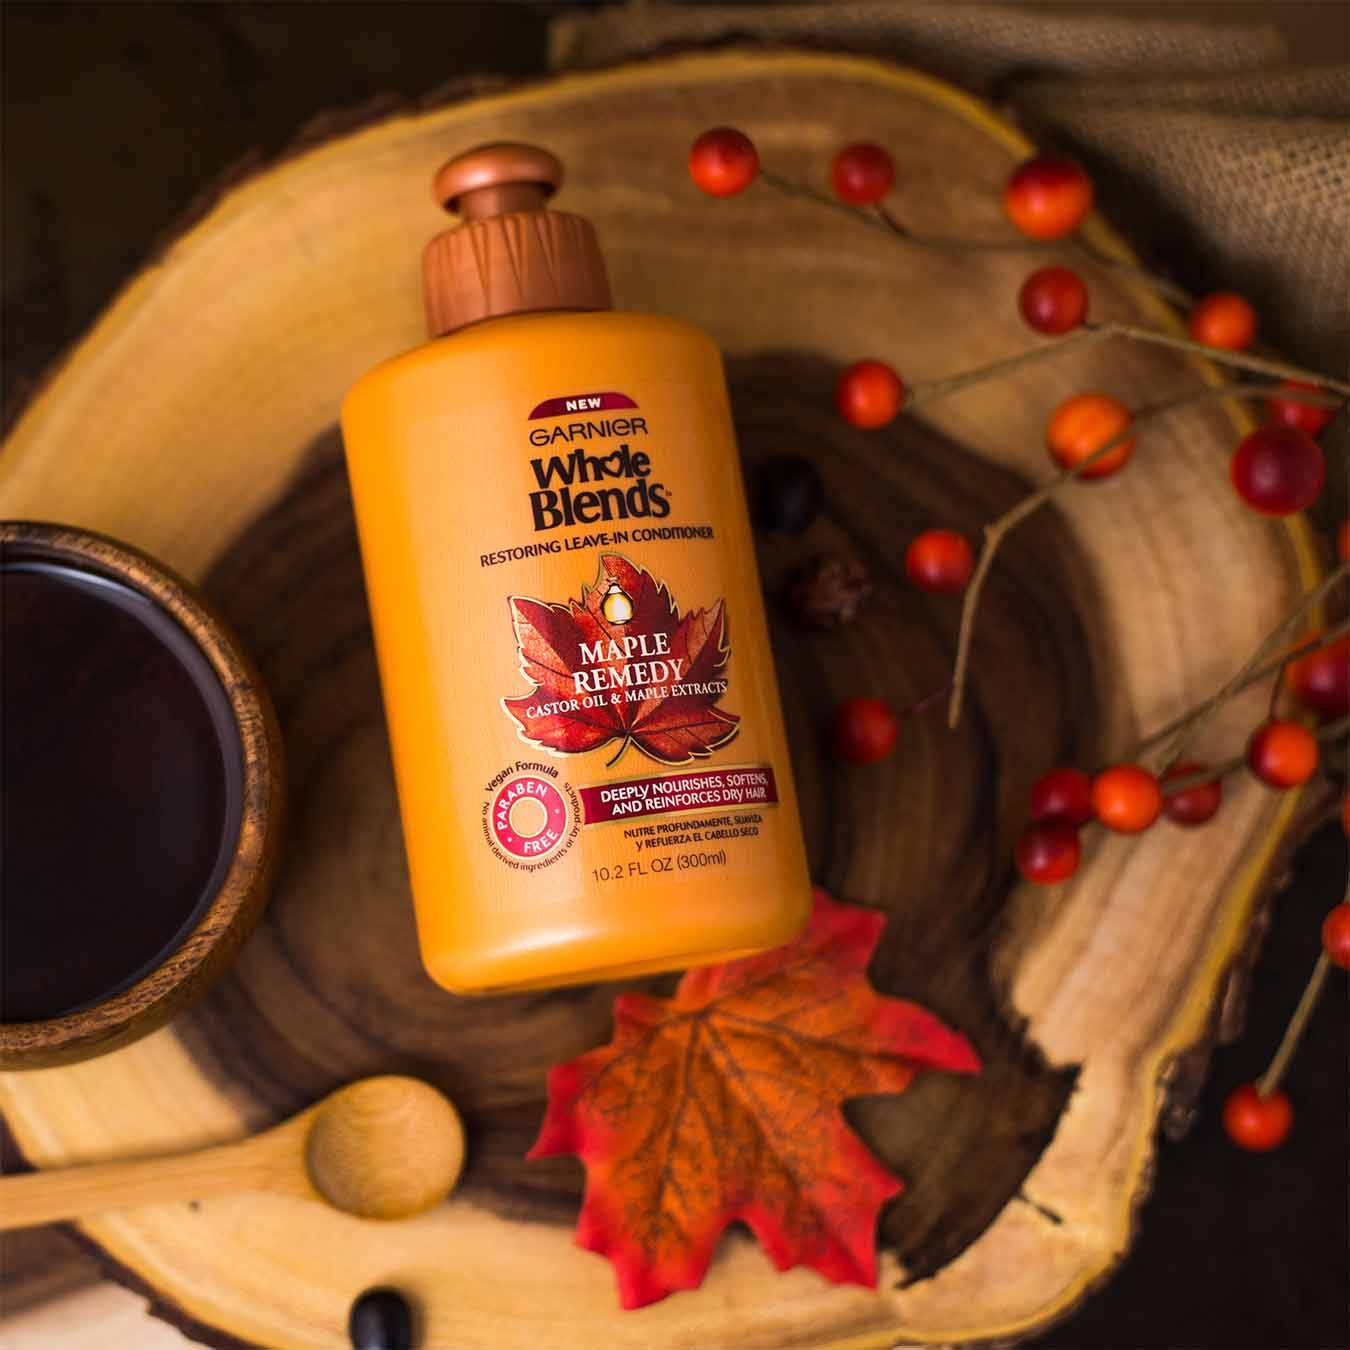 Whole Blends Maple Remedy Leave-In Conditioner with Caster Oil and Maple Extracts falling into a wooden bowl that contains a leafless bough of cranberries, a small wooden bowl of maple syrup, a wooden spoon, and a red-orange maple leaf on a woven cloth and wooden table.